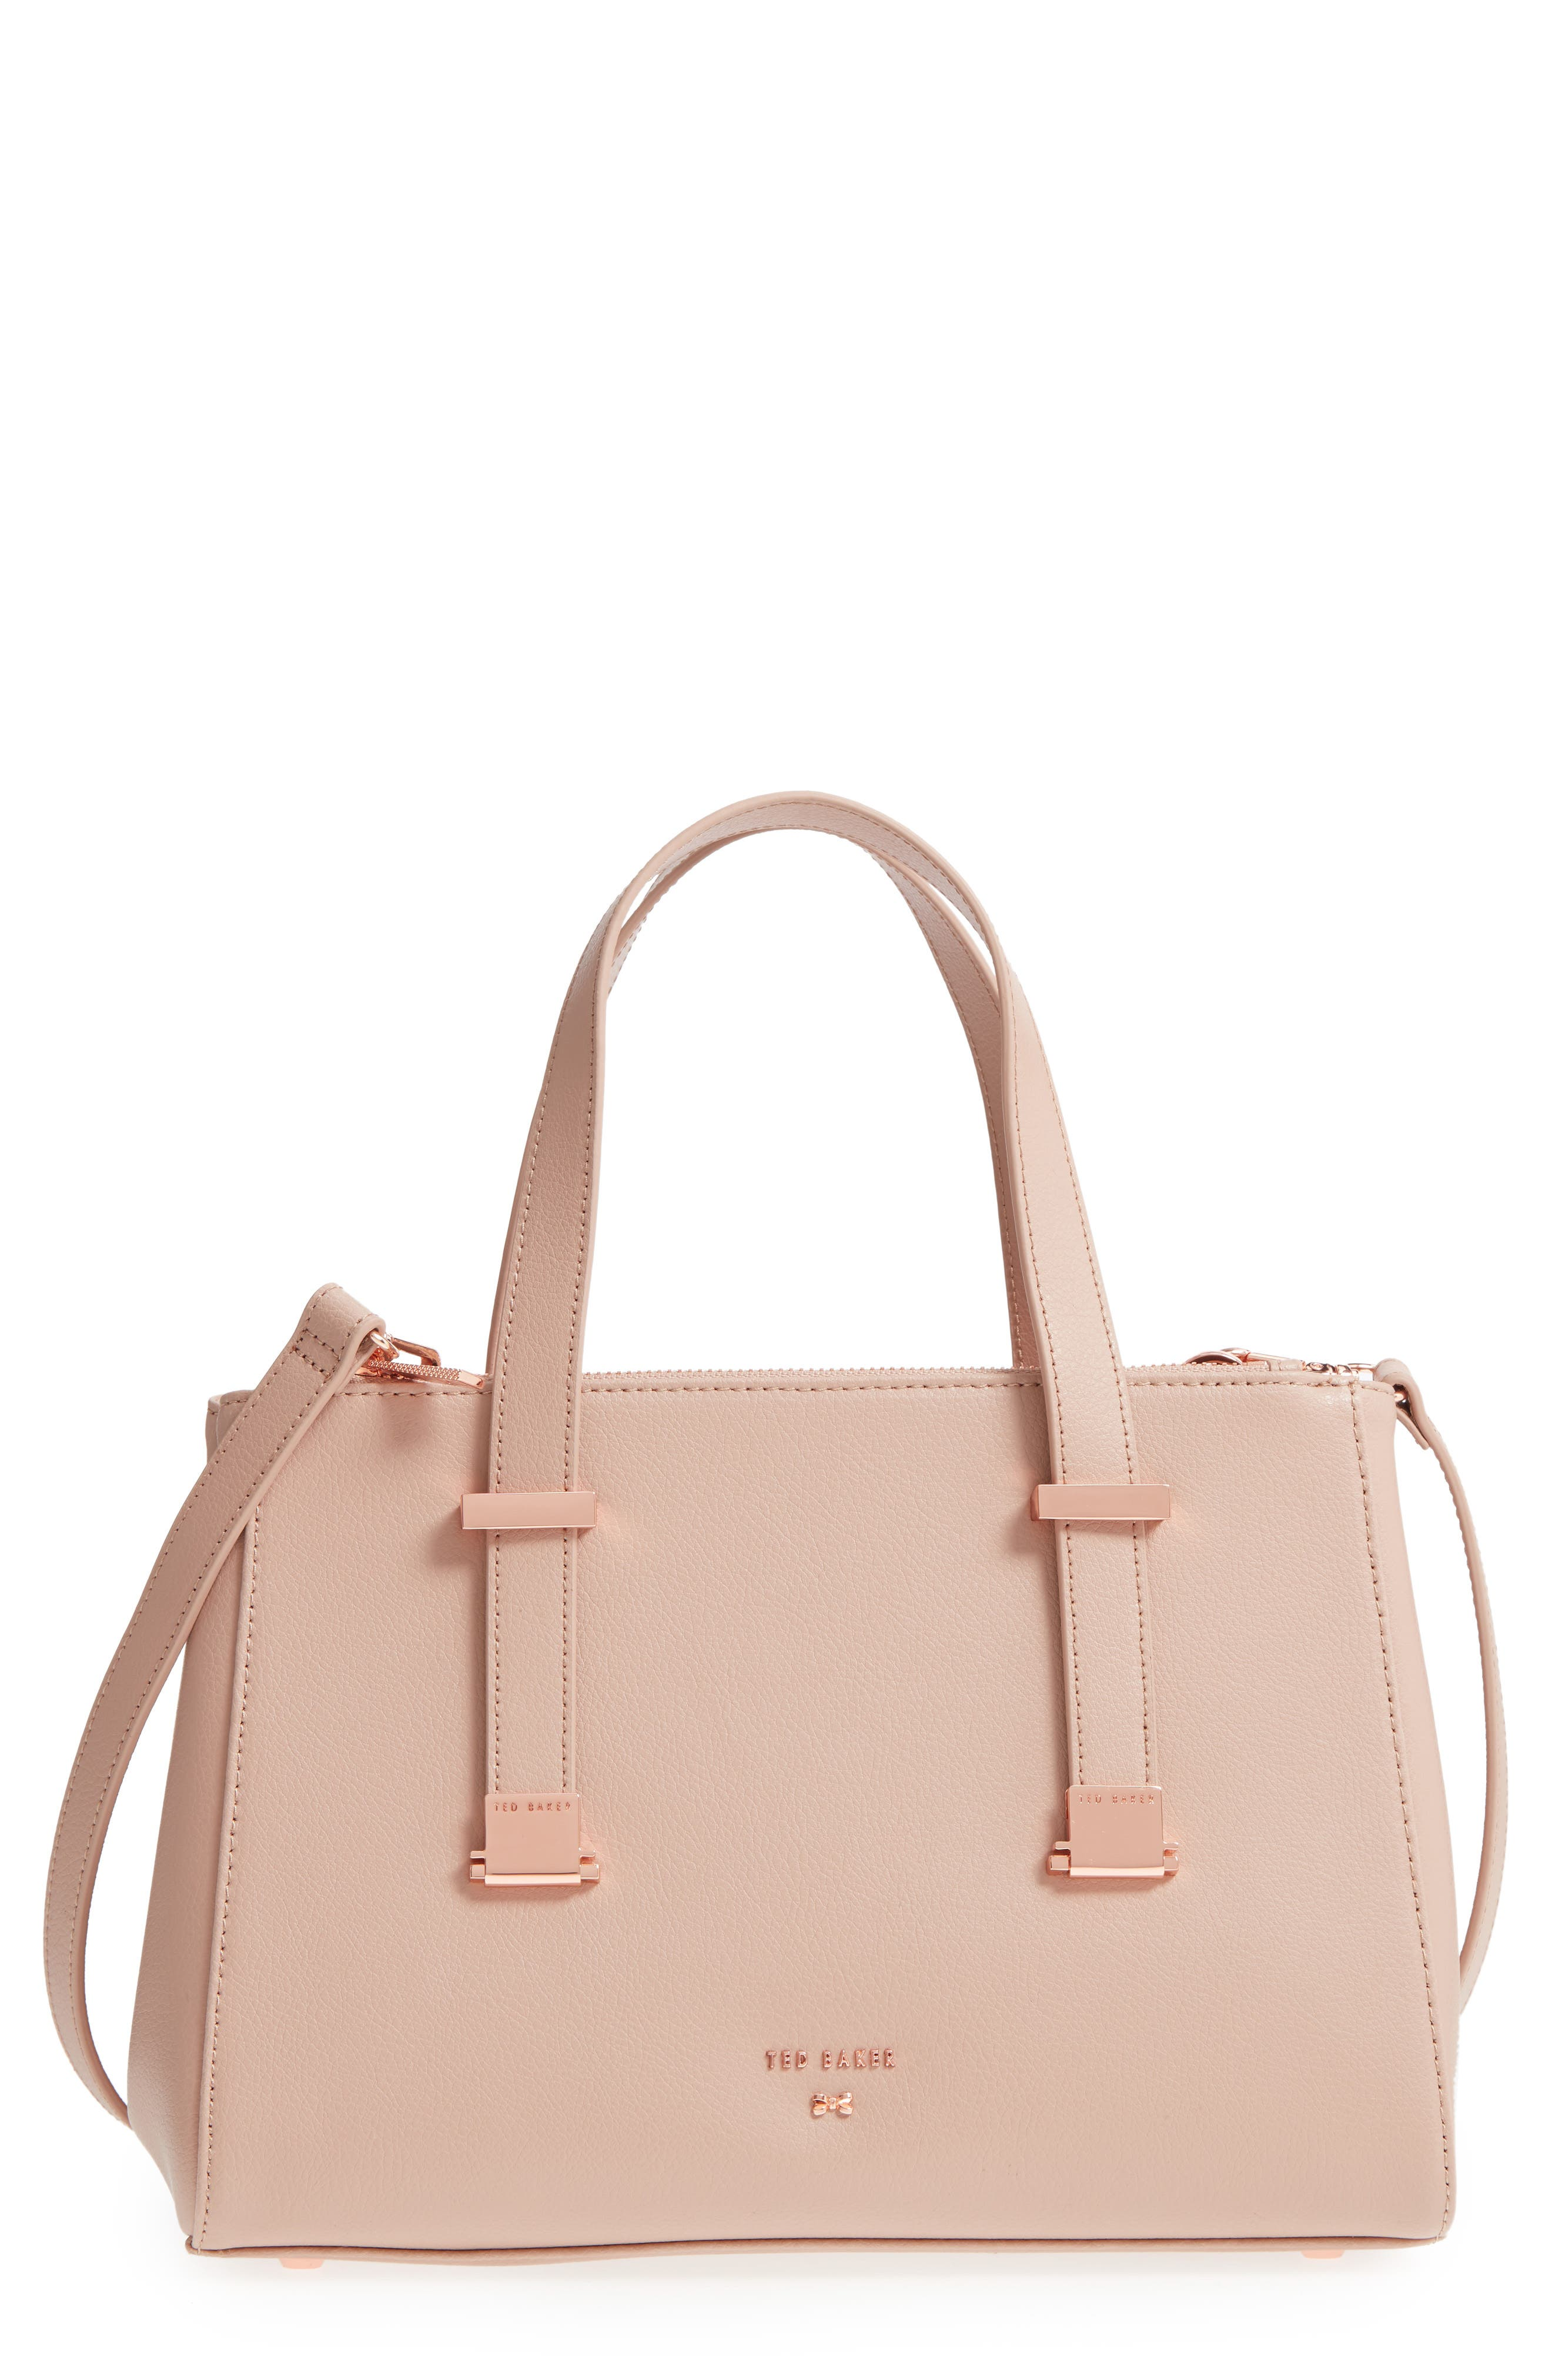 Audreyy Small Adjustable Handle Leather Shopper,                         Main,                         color, 650